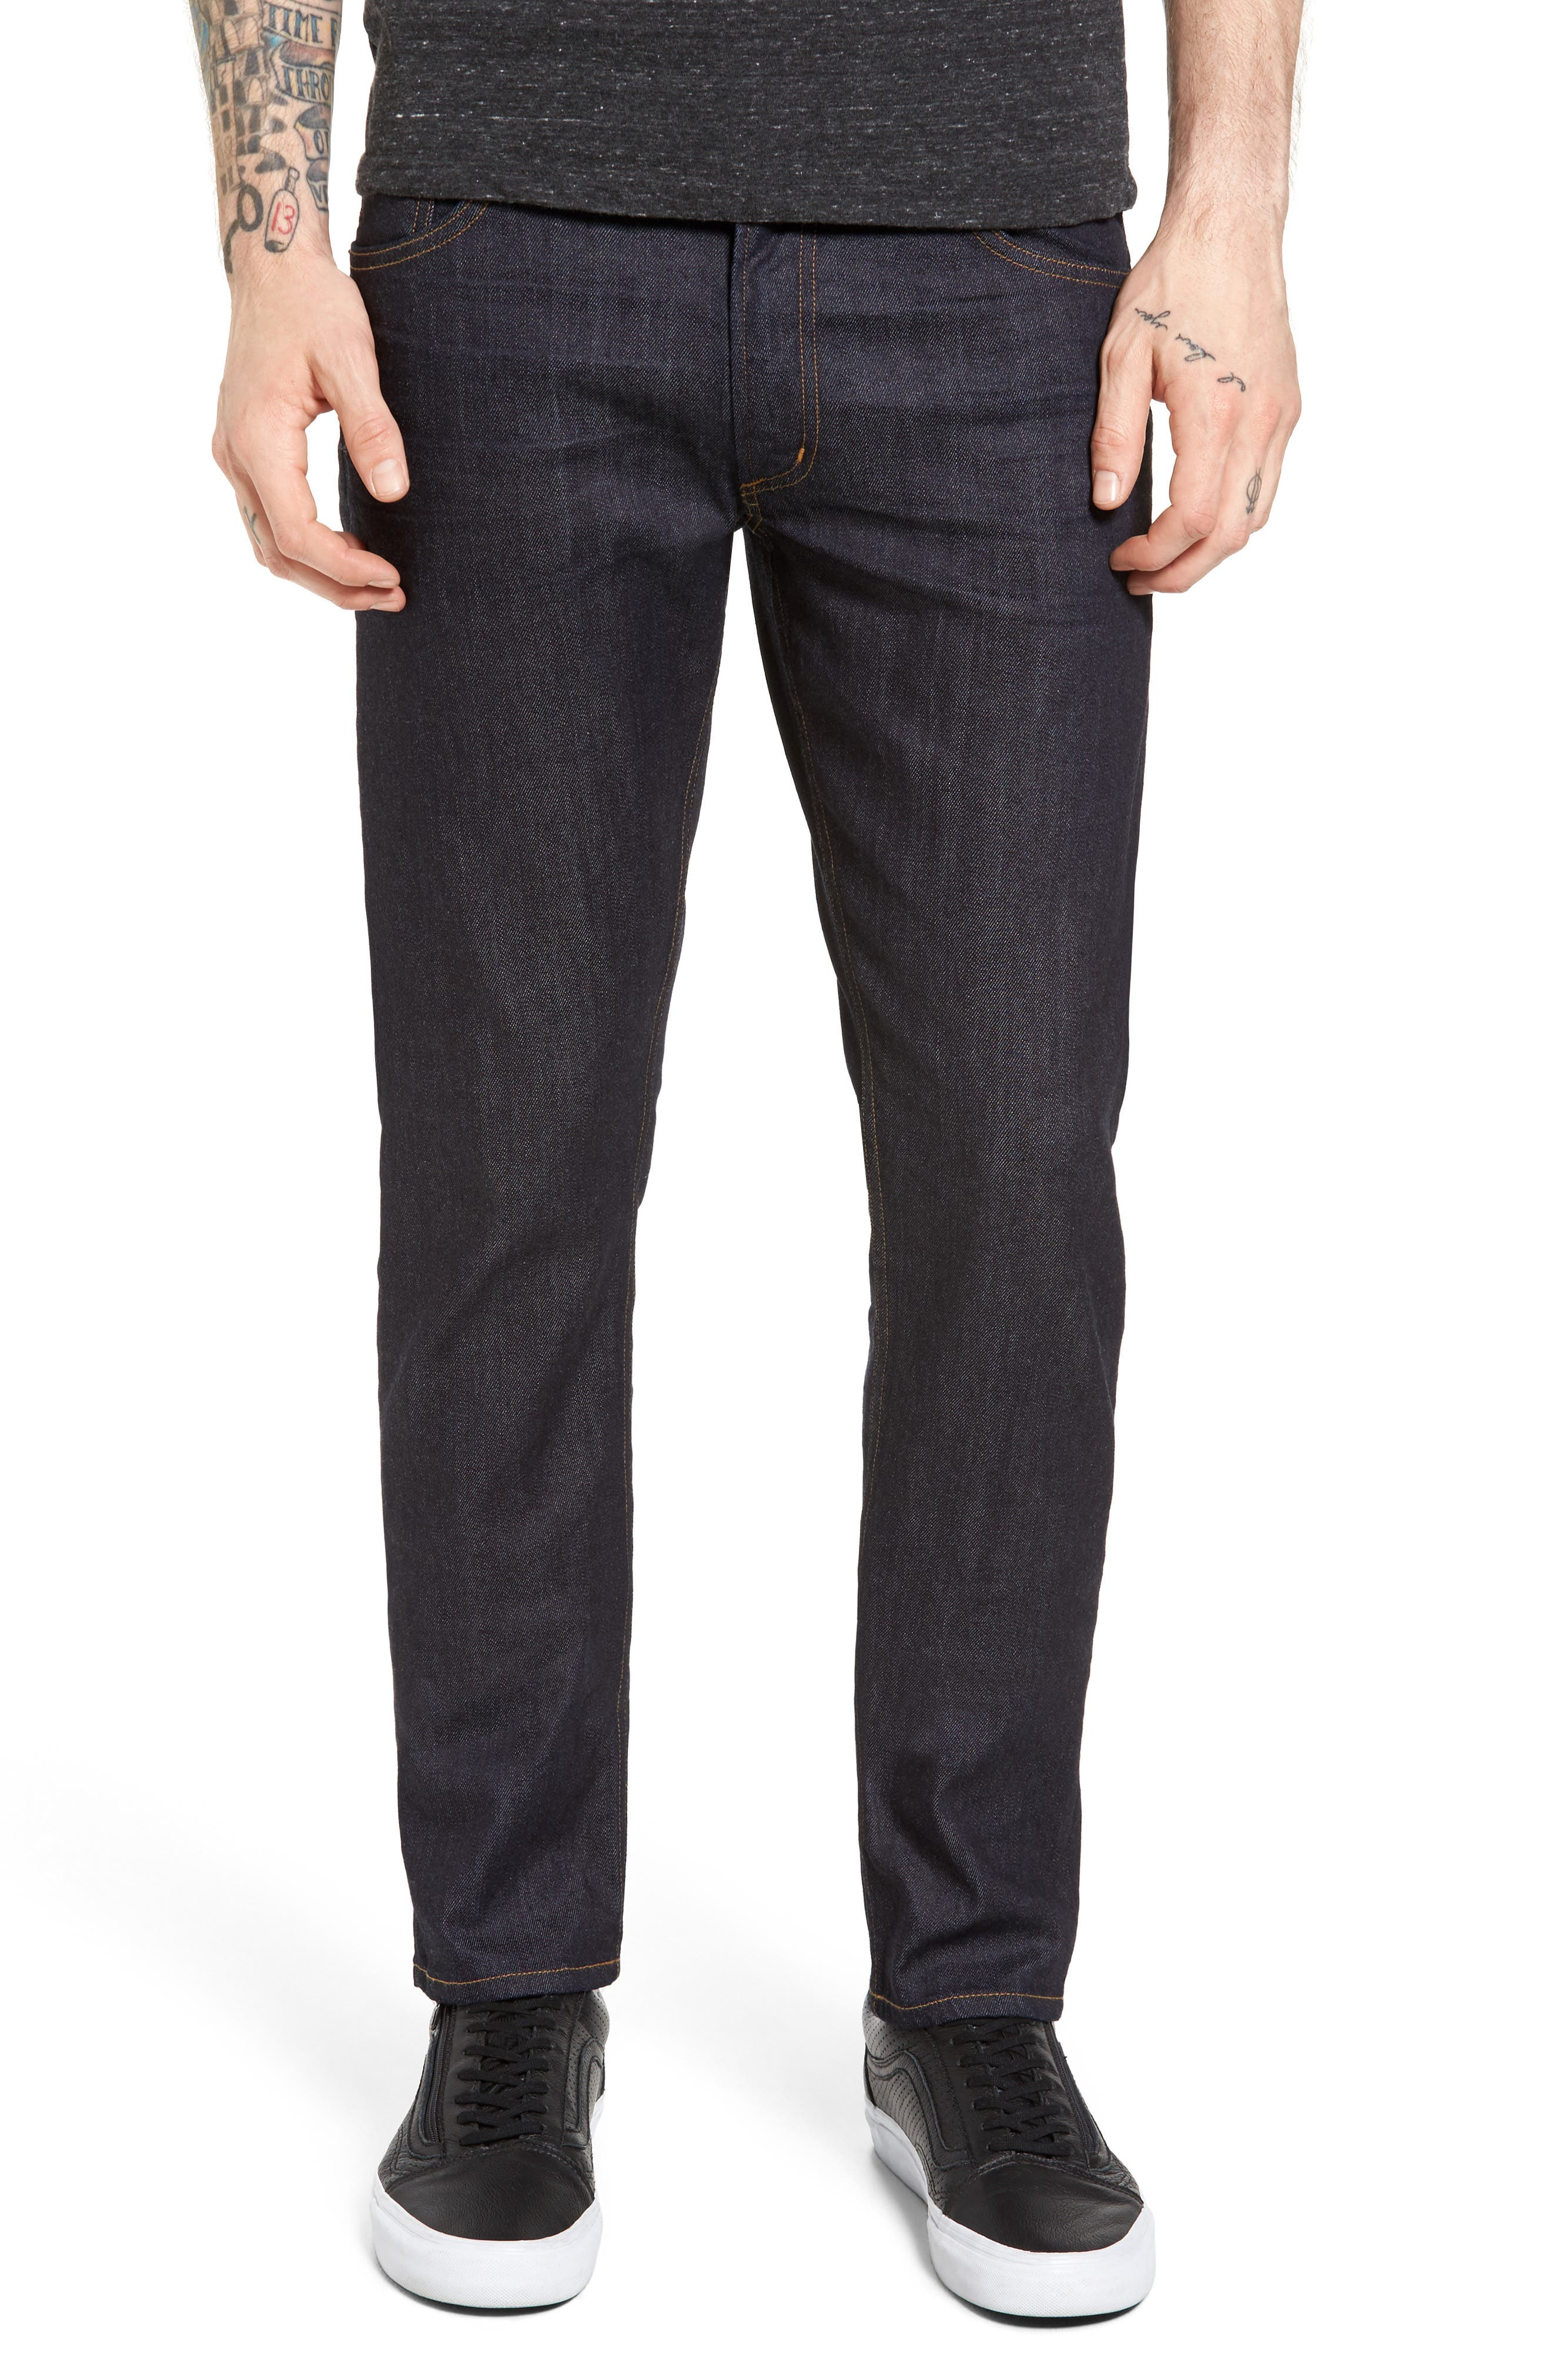 Bowery Slim Fit Jeans,                             Alternate thumbnail 2, color,                             432